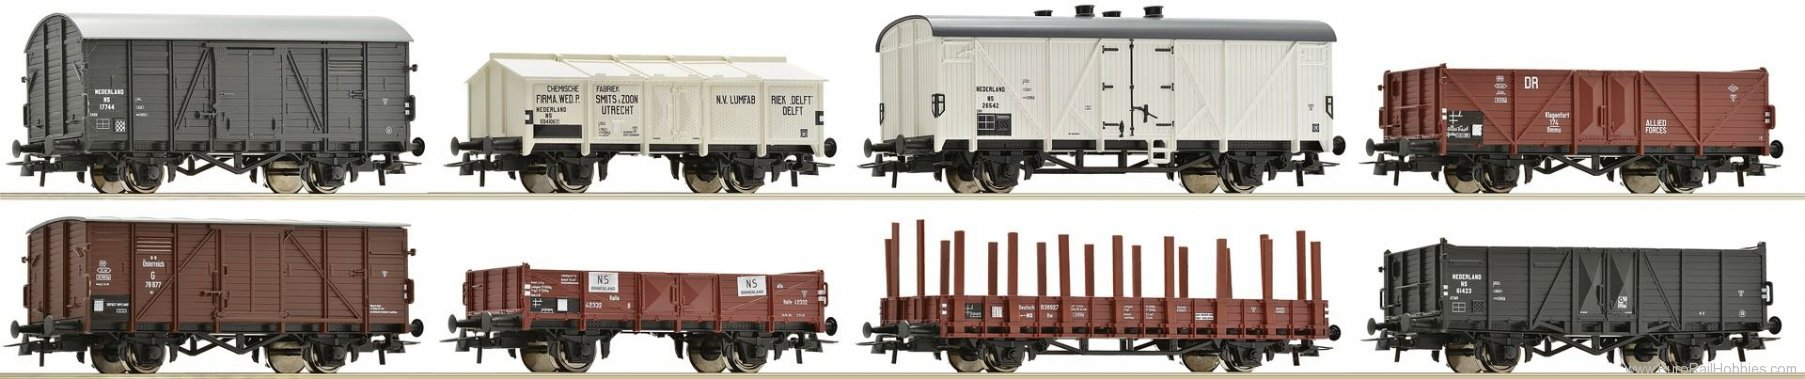 Roco 67128 Set of 8 goods wagons, NS